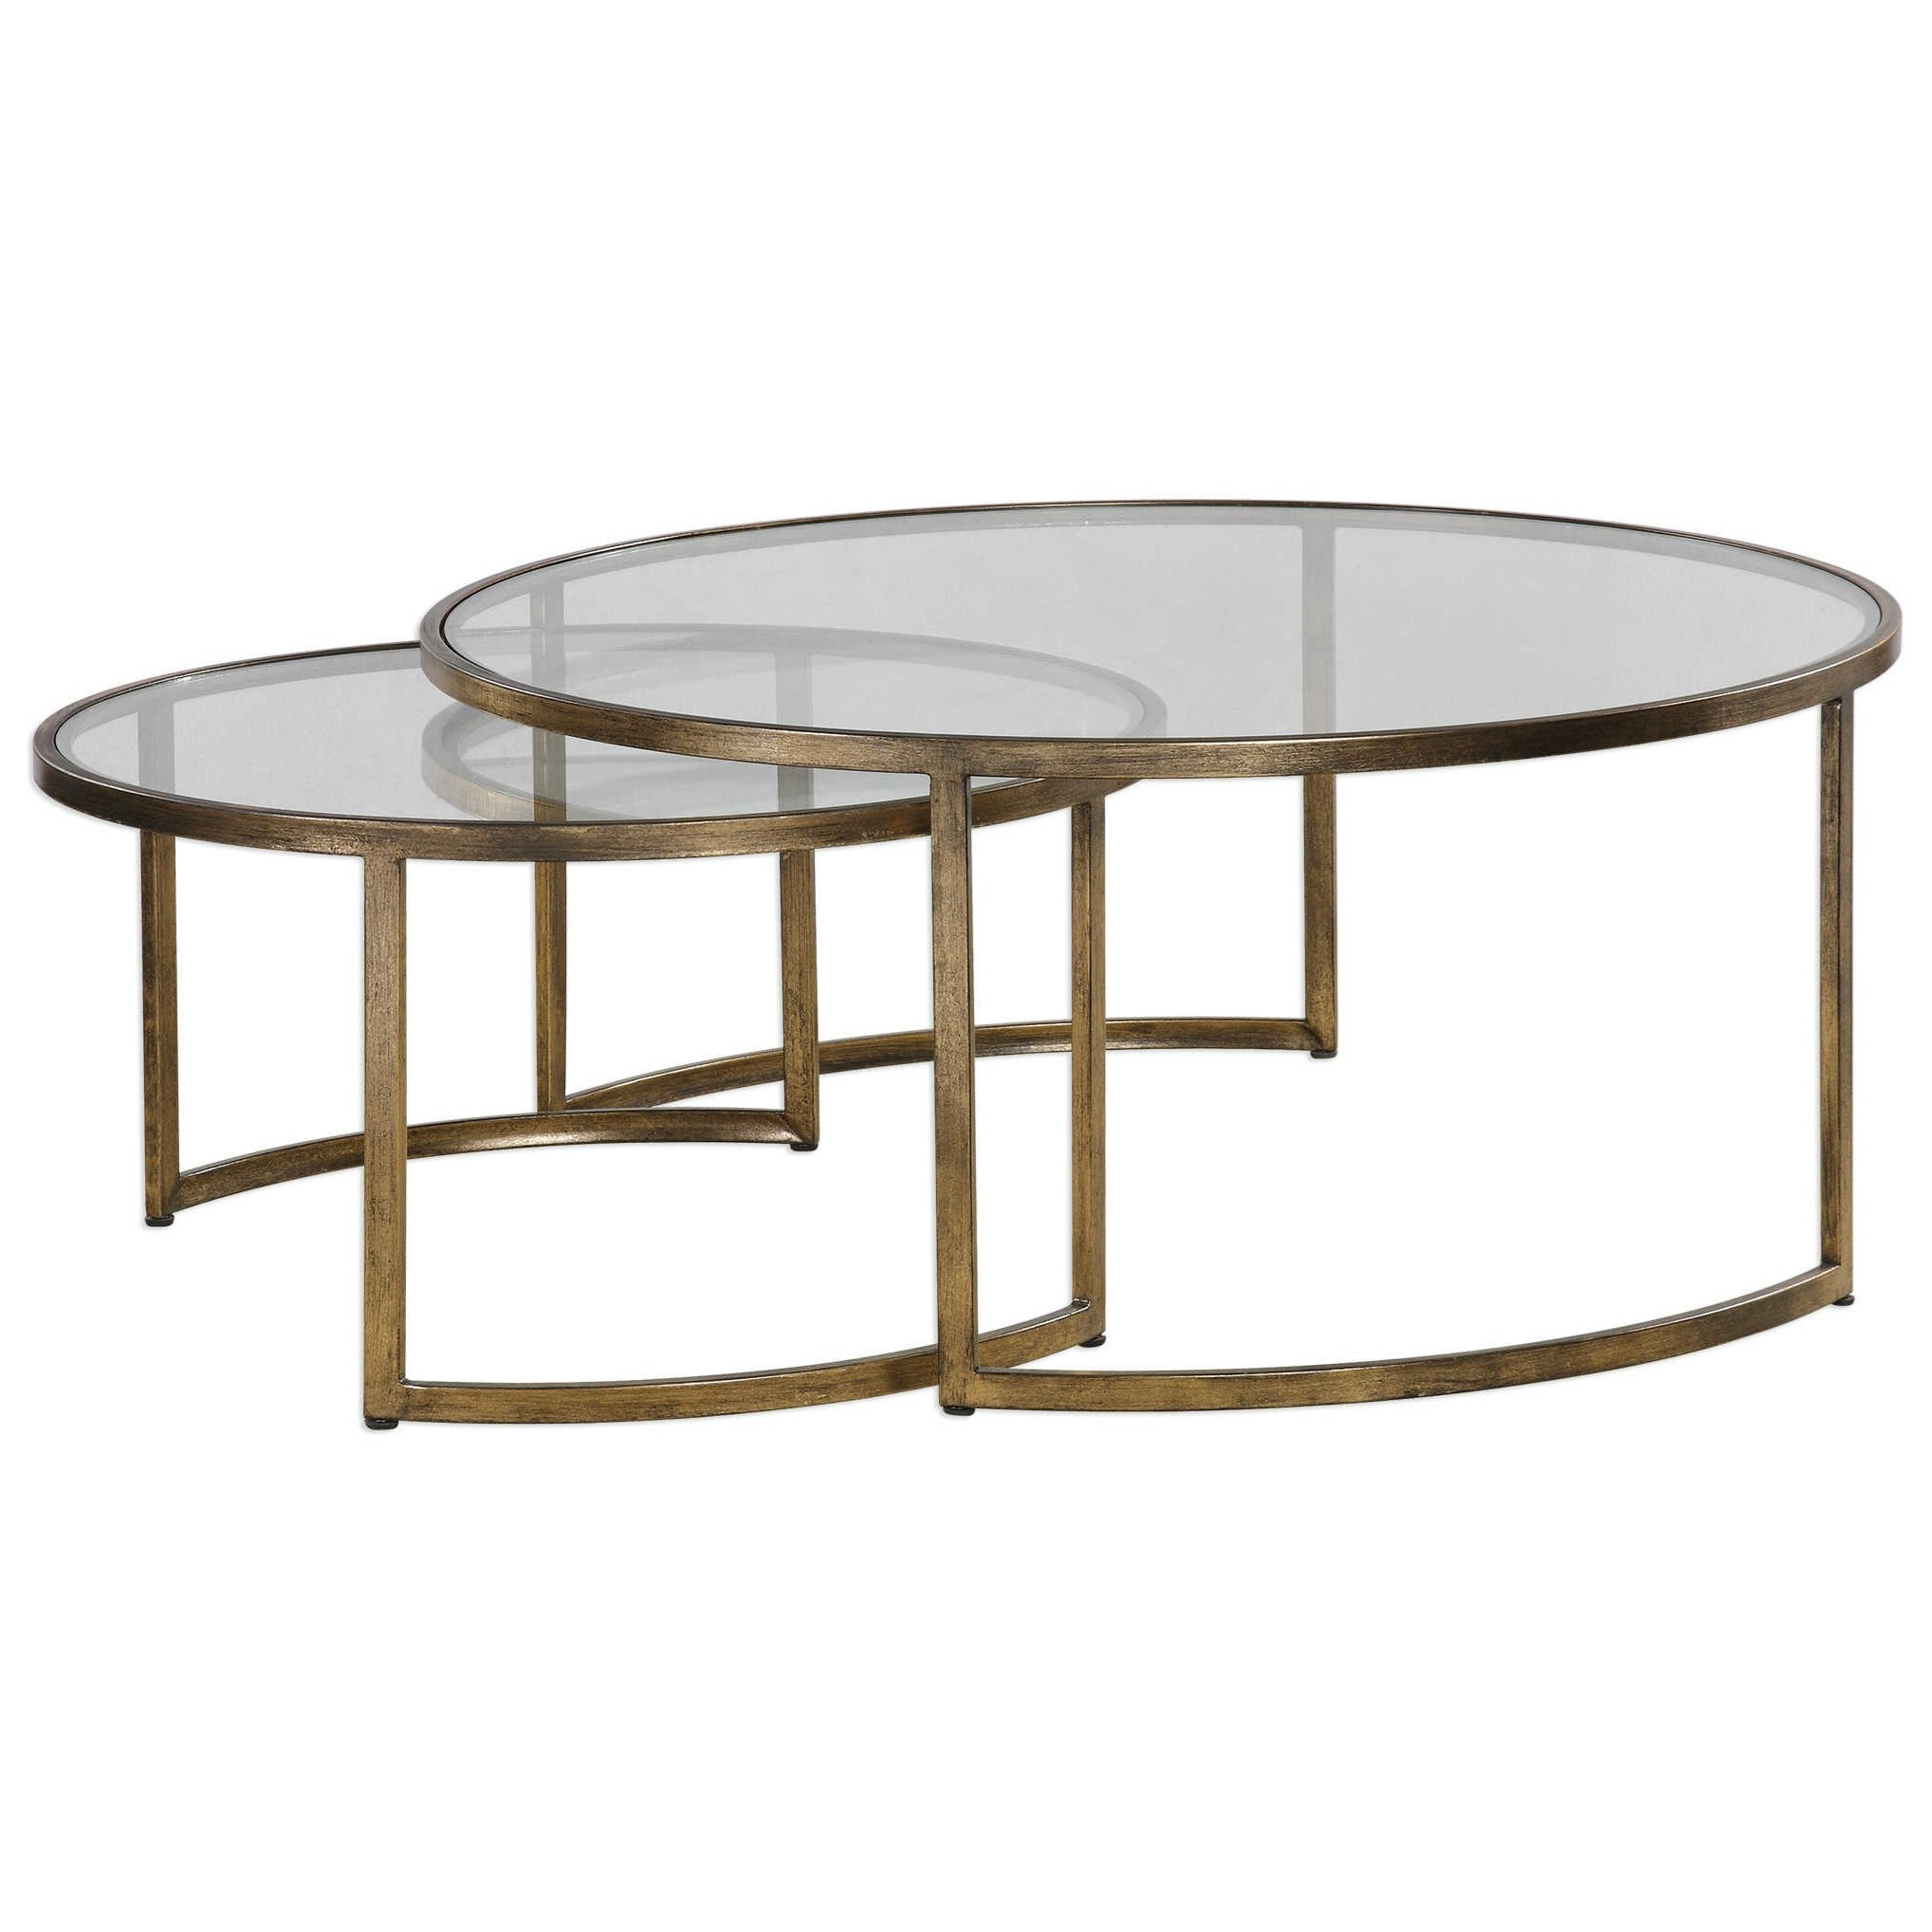 Accent Furniture - Occasional Tables Rhea Nested Coffee Tables Set of 2 by Uttermost at Upper Room Home Furnishings